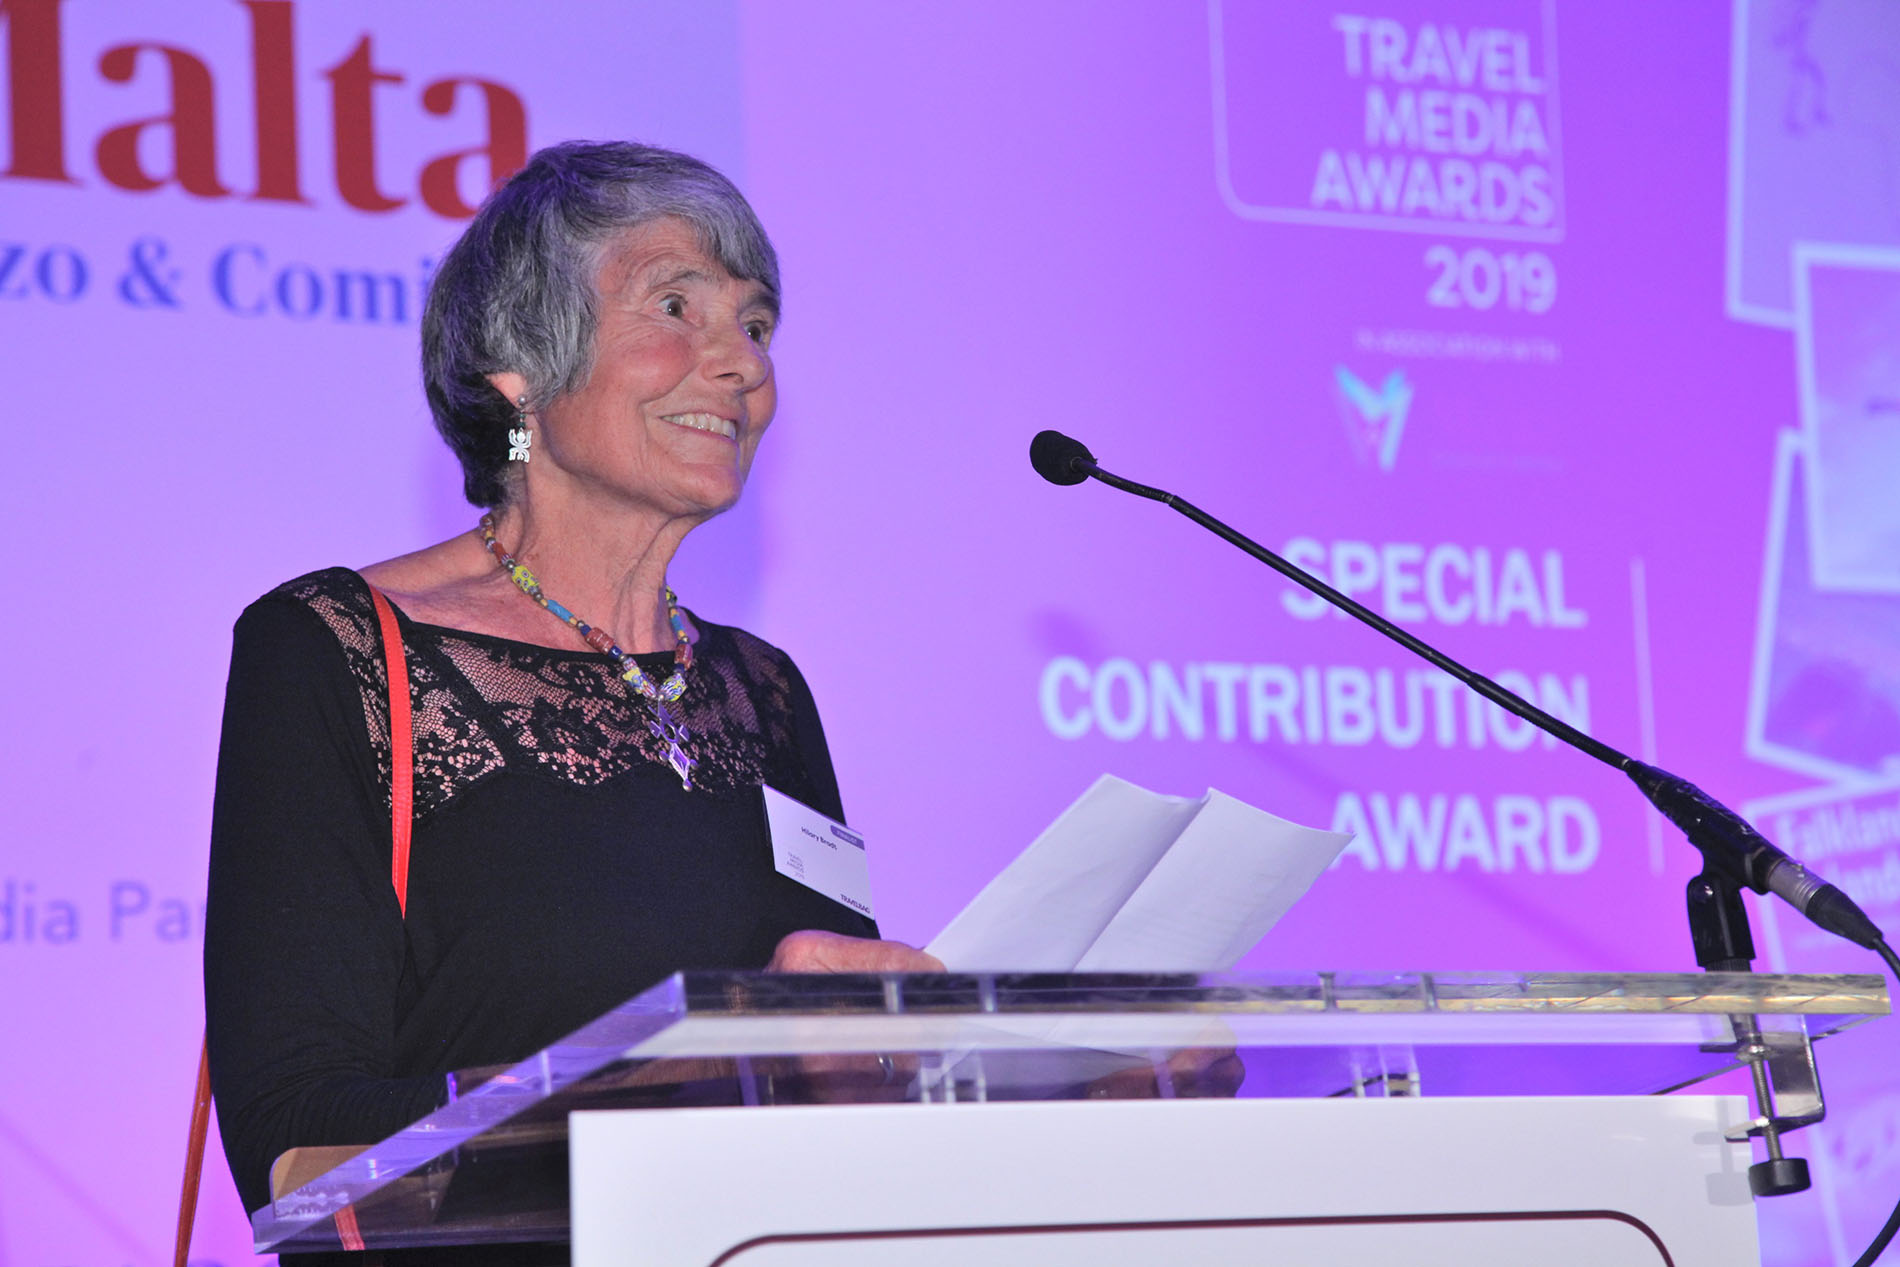 Hilary Bradt accepting the Special Contribution Award at the Travel Media Awards 2019.